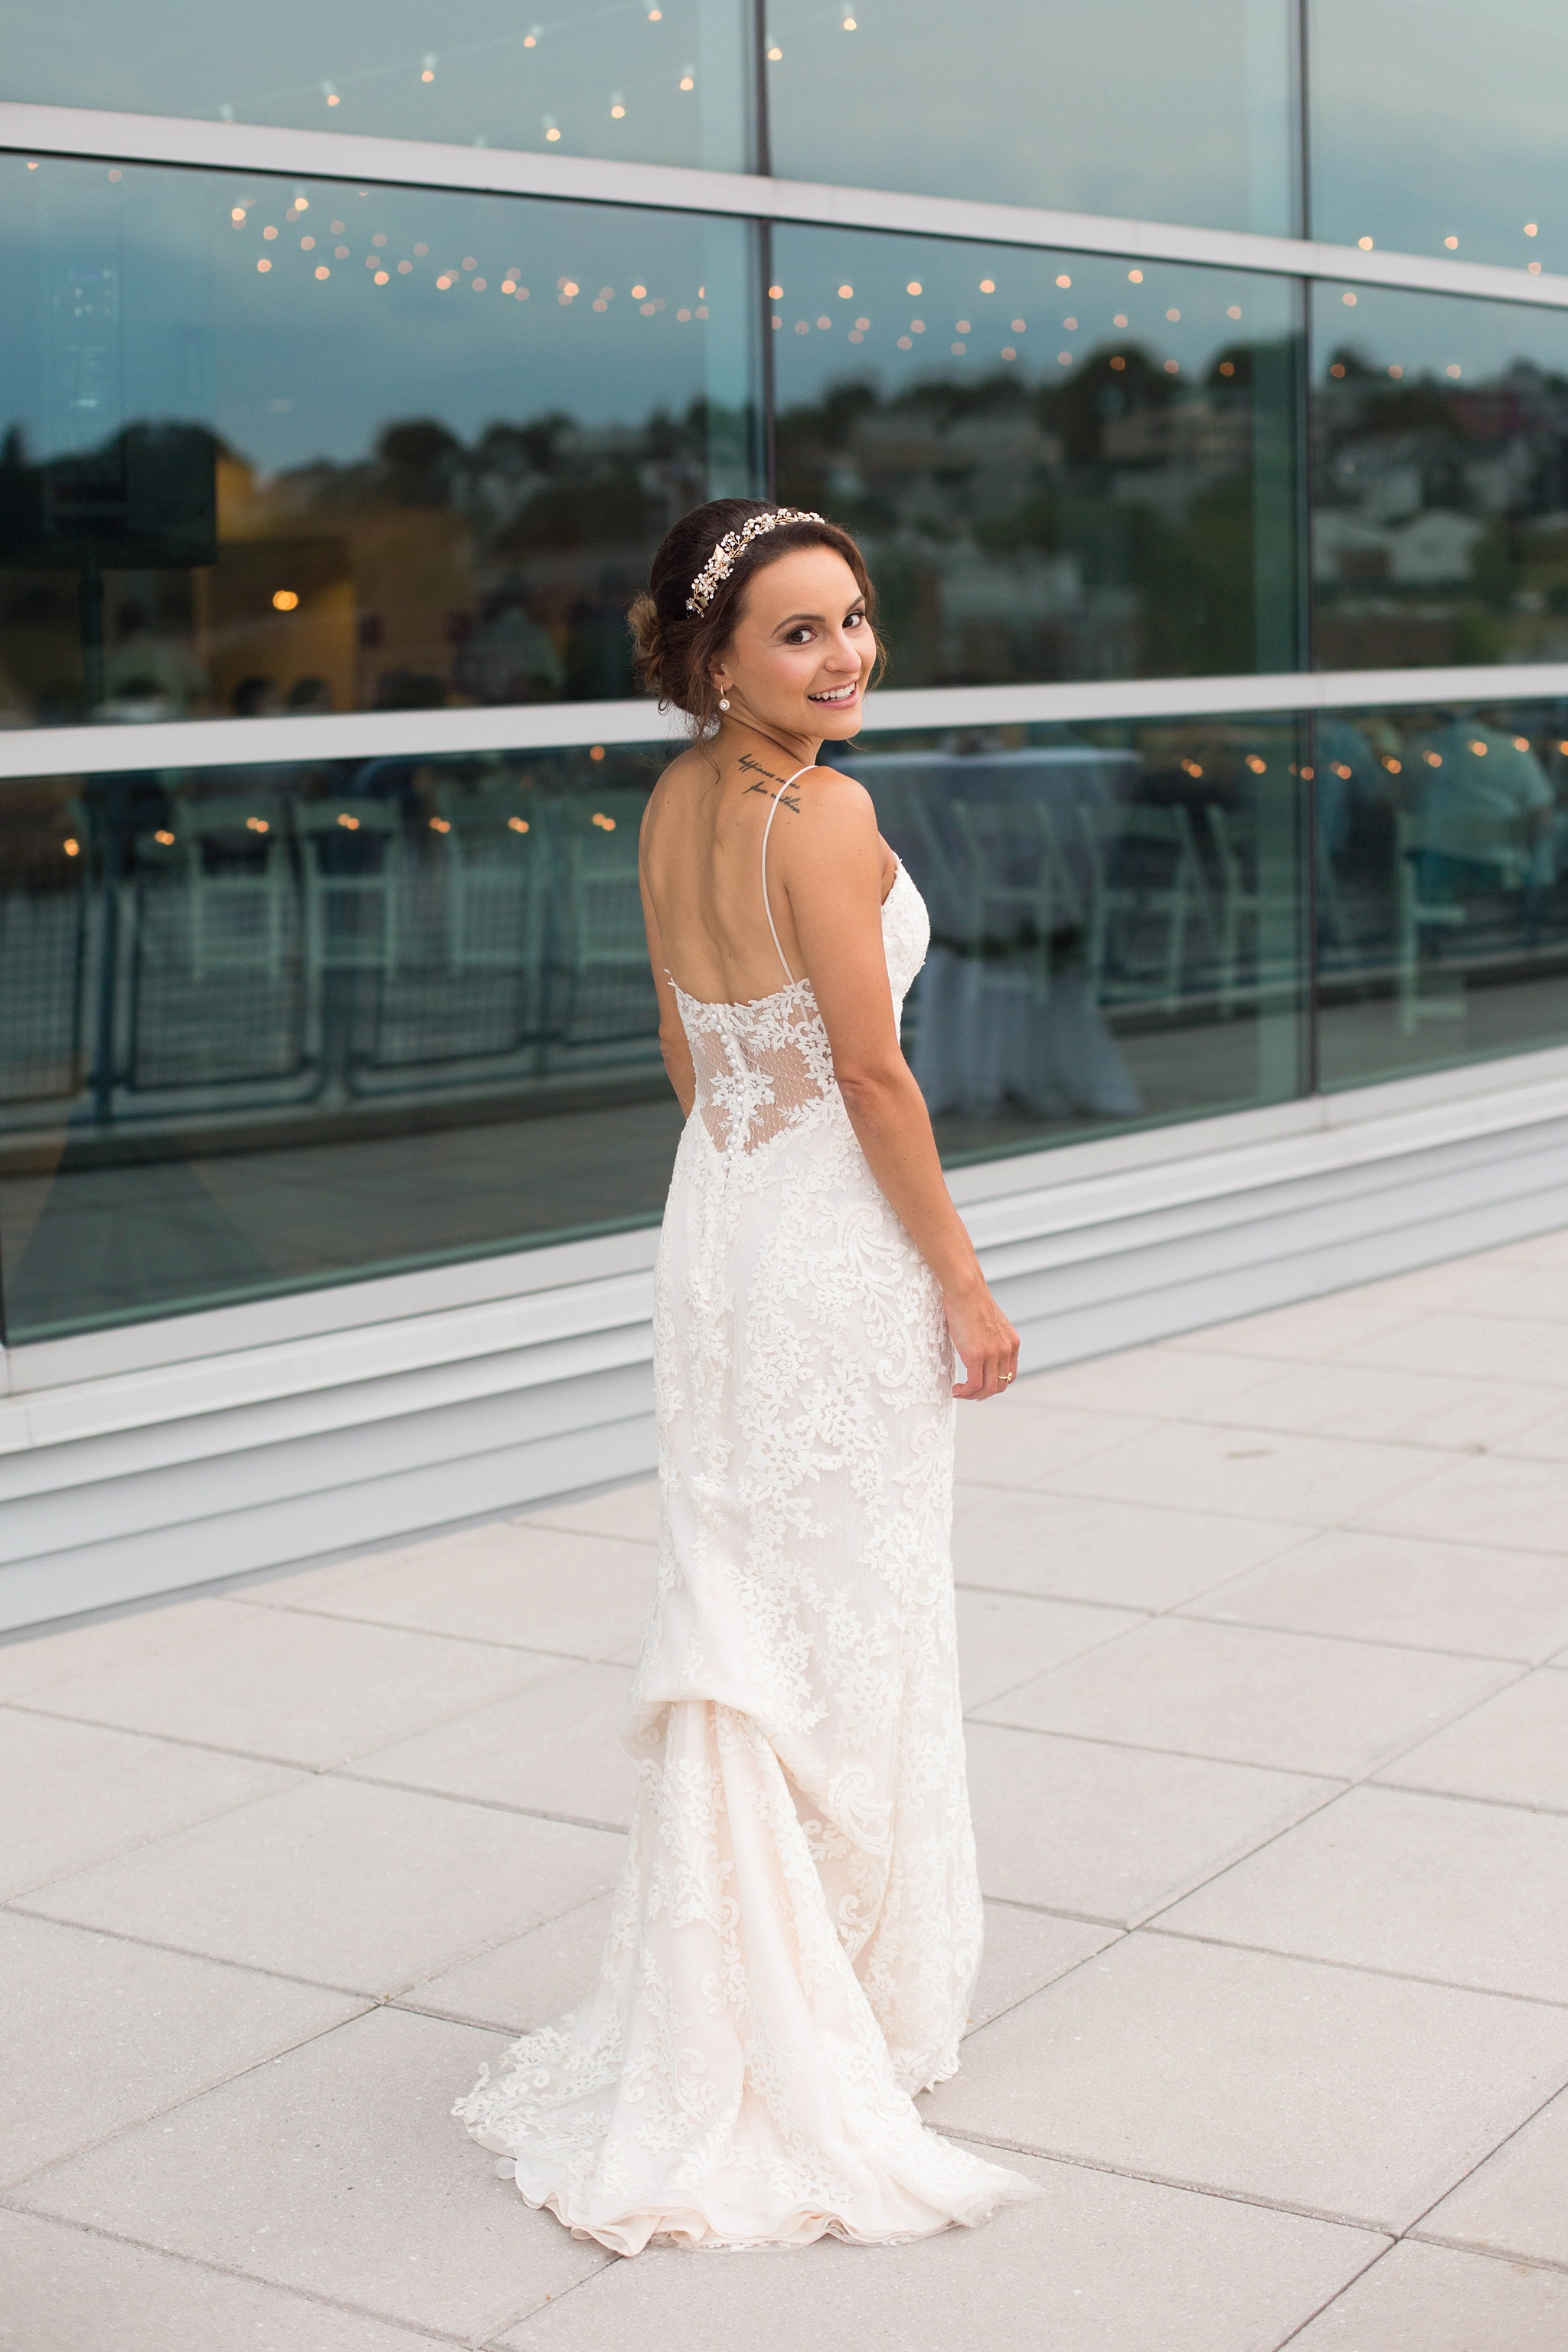 brides gown bustled